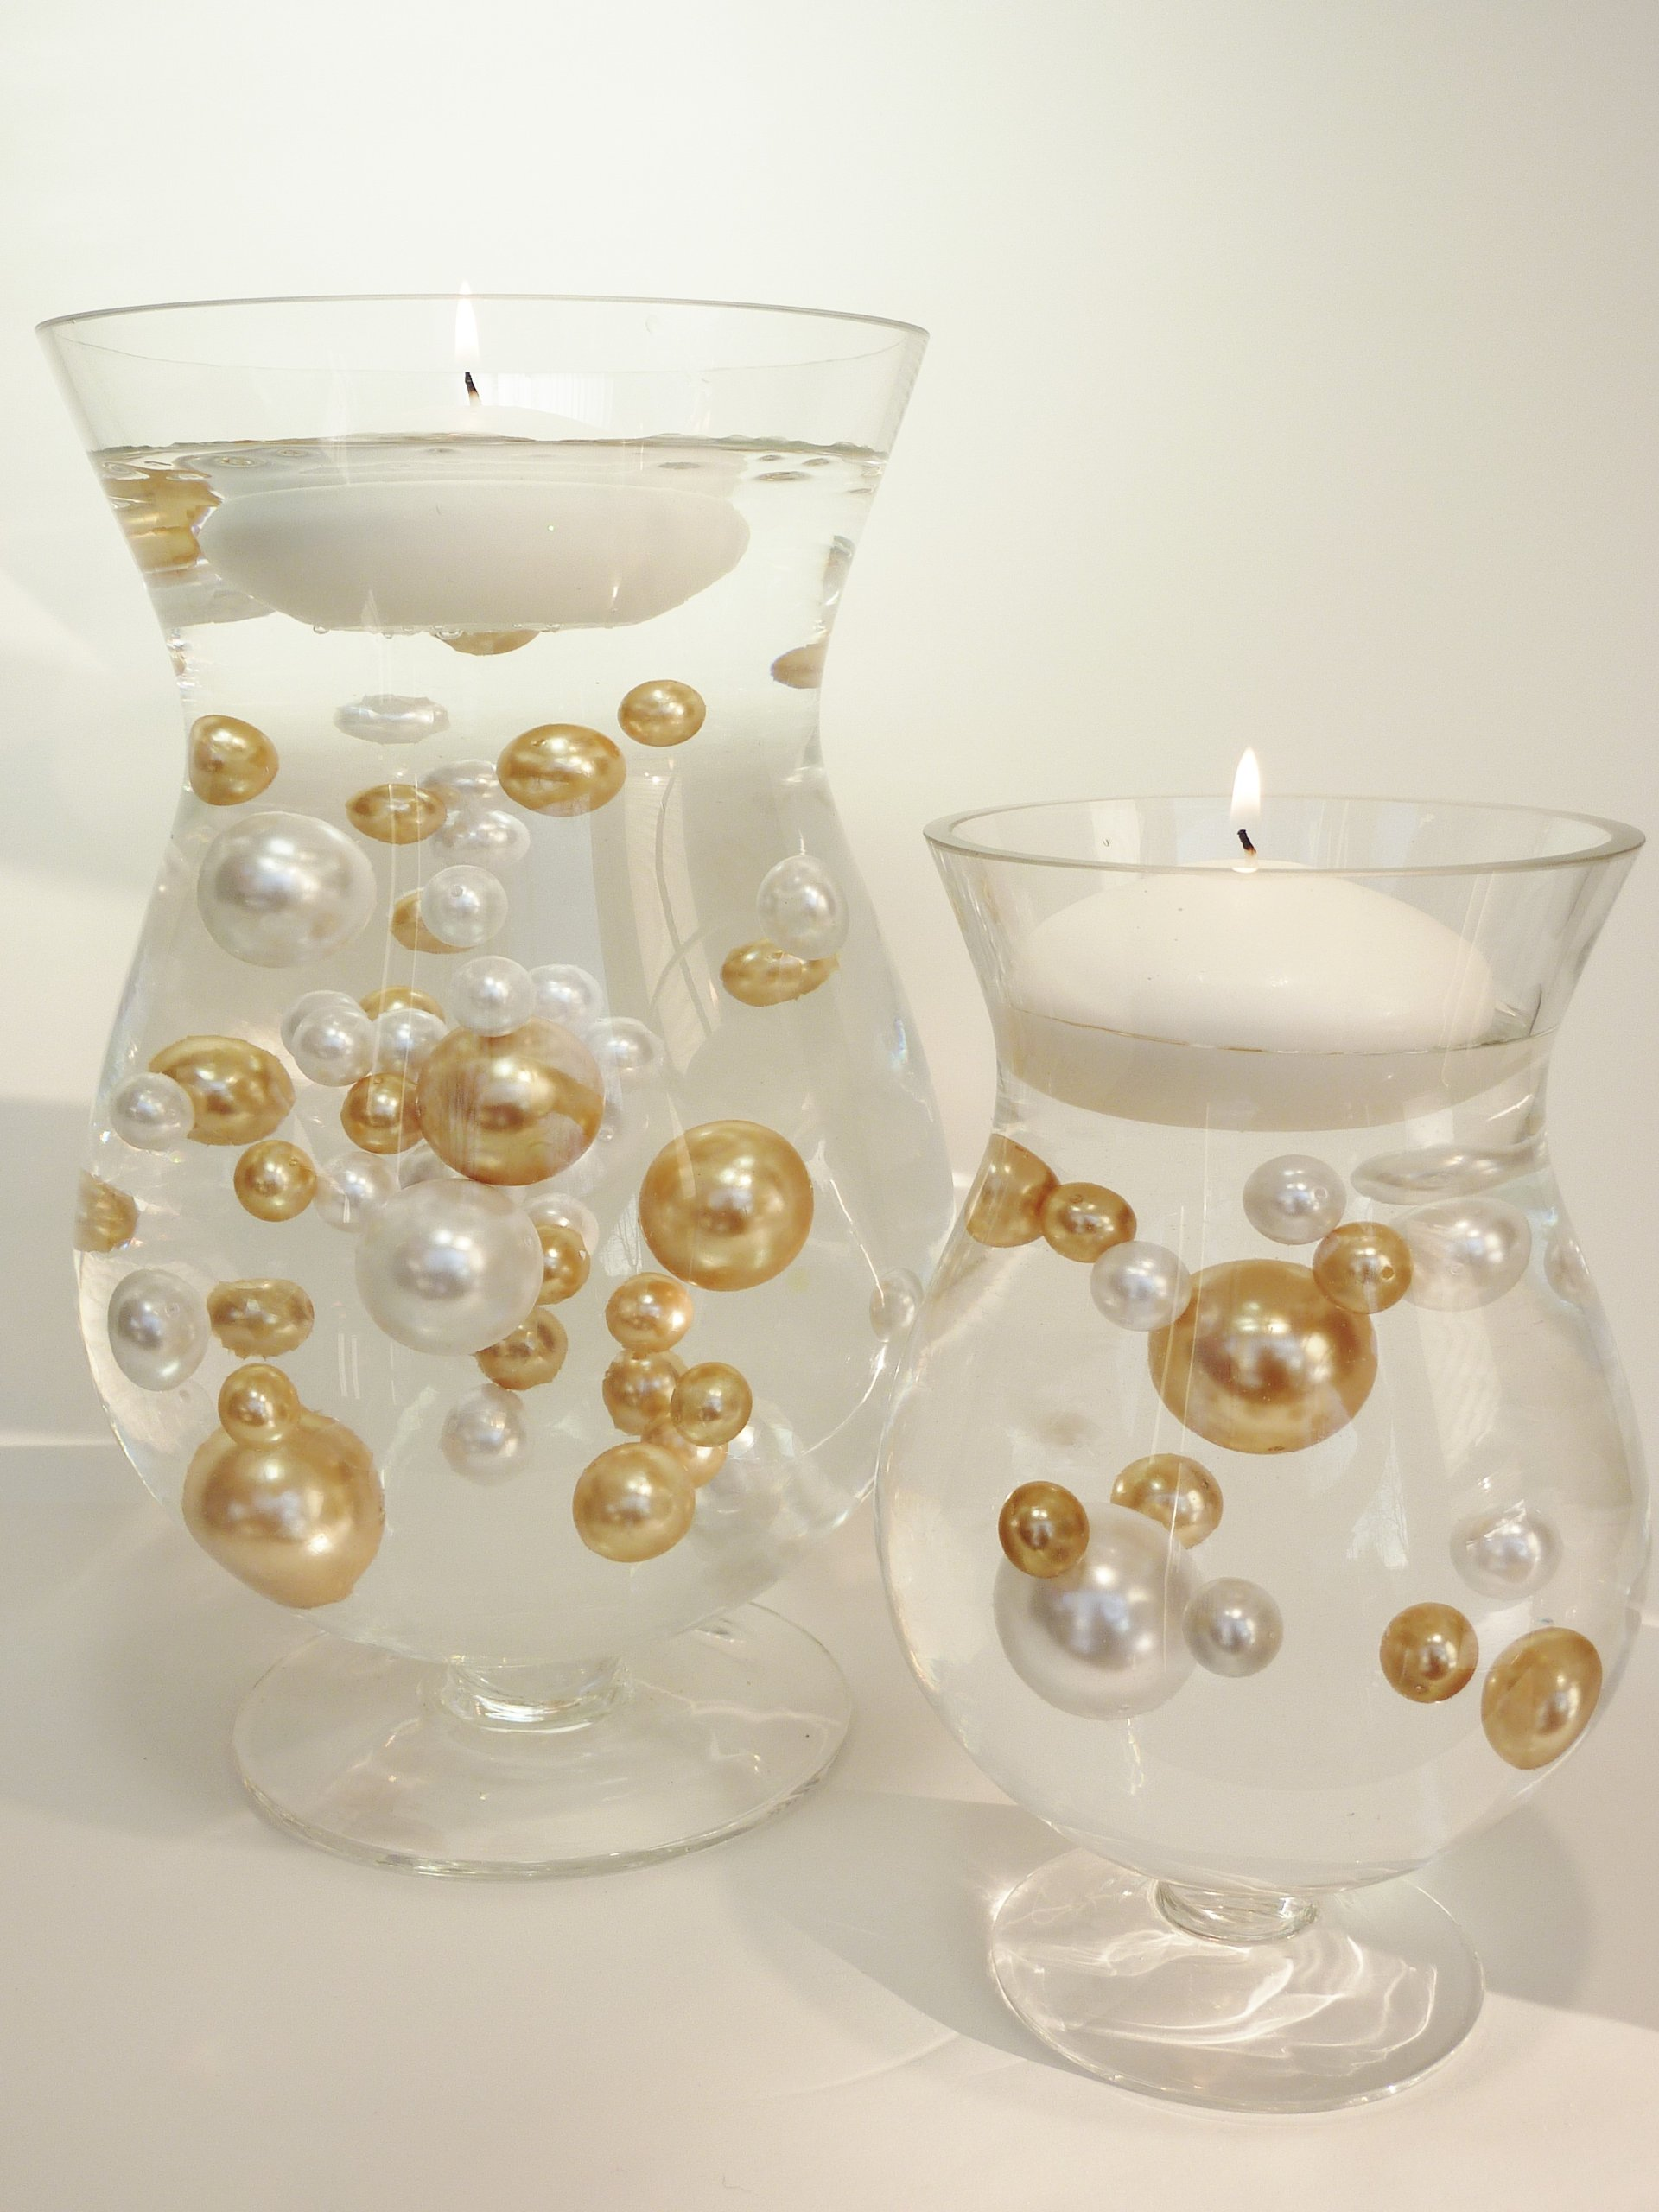 Unique Jumbo & Assorted Sizes 80 Pieces Gold and White Pearls Value Pack Vase Fillers. NOT INCLUDING THE TRANSPARENT WATER GELS FOR FLOATING THE PEARLS (SOLD SEPARATELY).